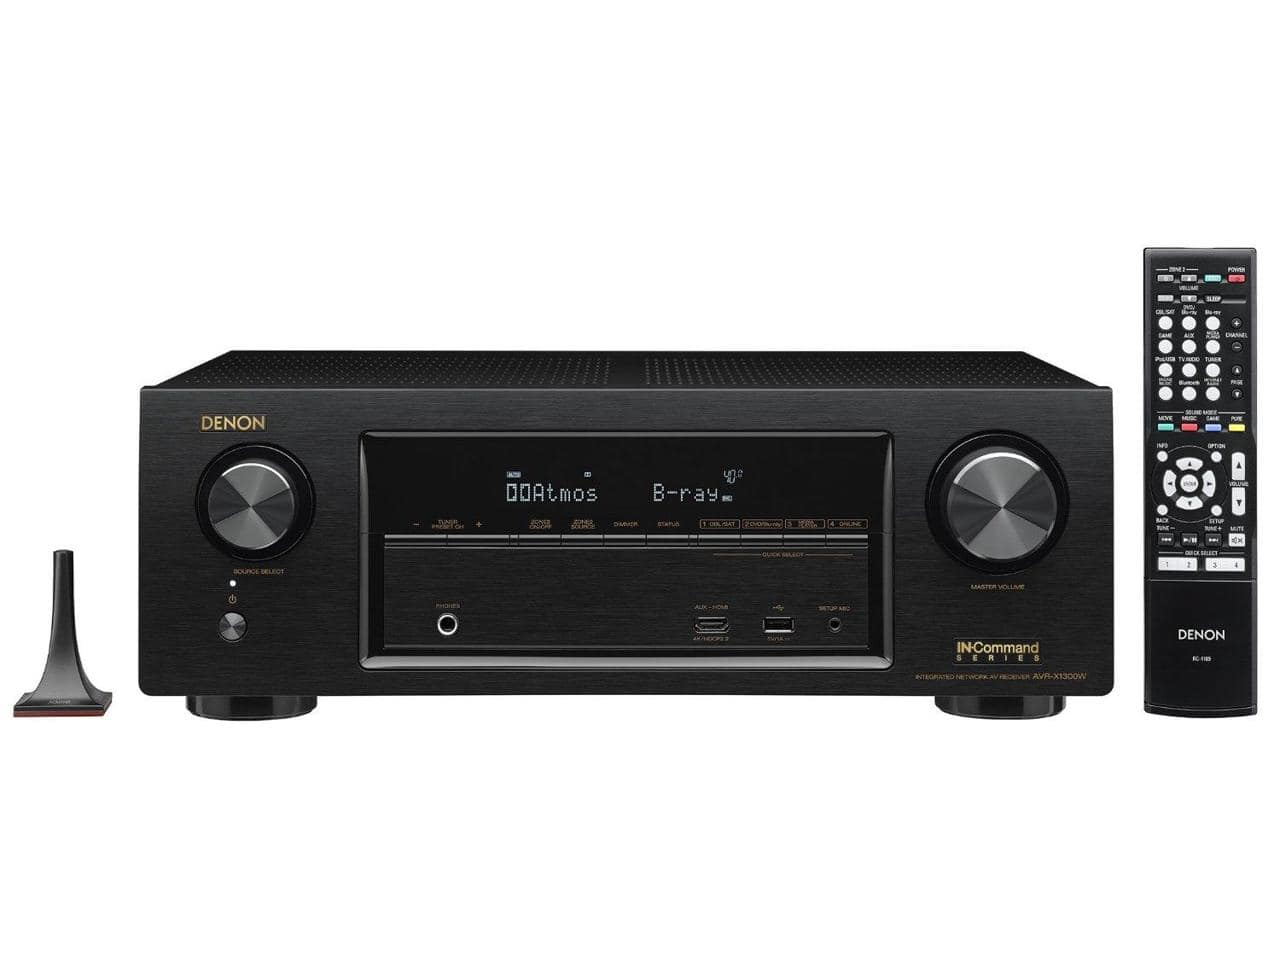 Denon AVR-X1300W 7.2 Channel Full 4K Ultra HD Network A/V Receiver with Wi-Fi and Bluetooth for $299